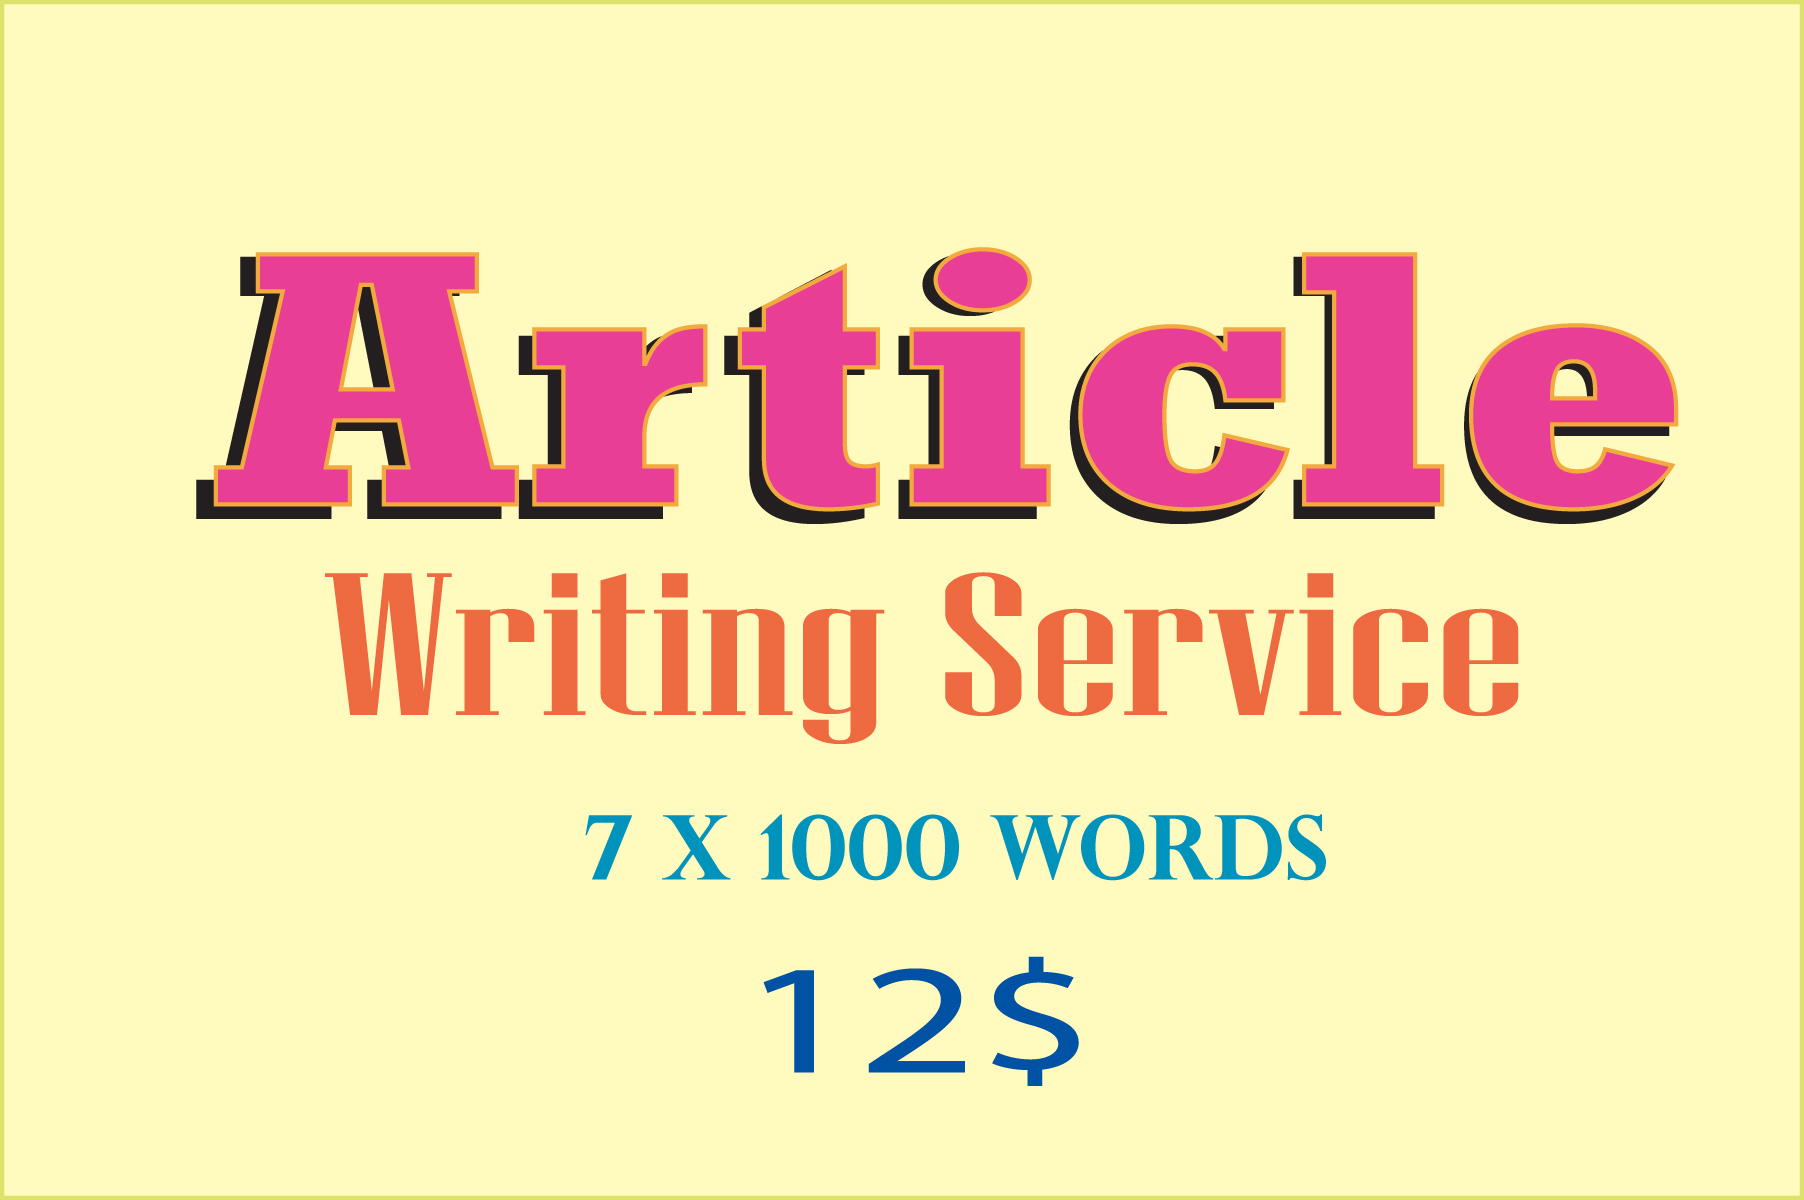 7 × 1000 words article writing service in any niche